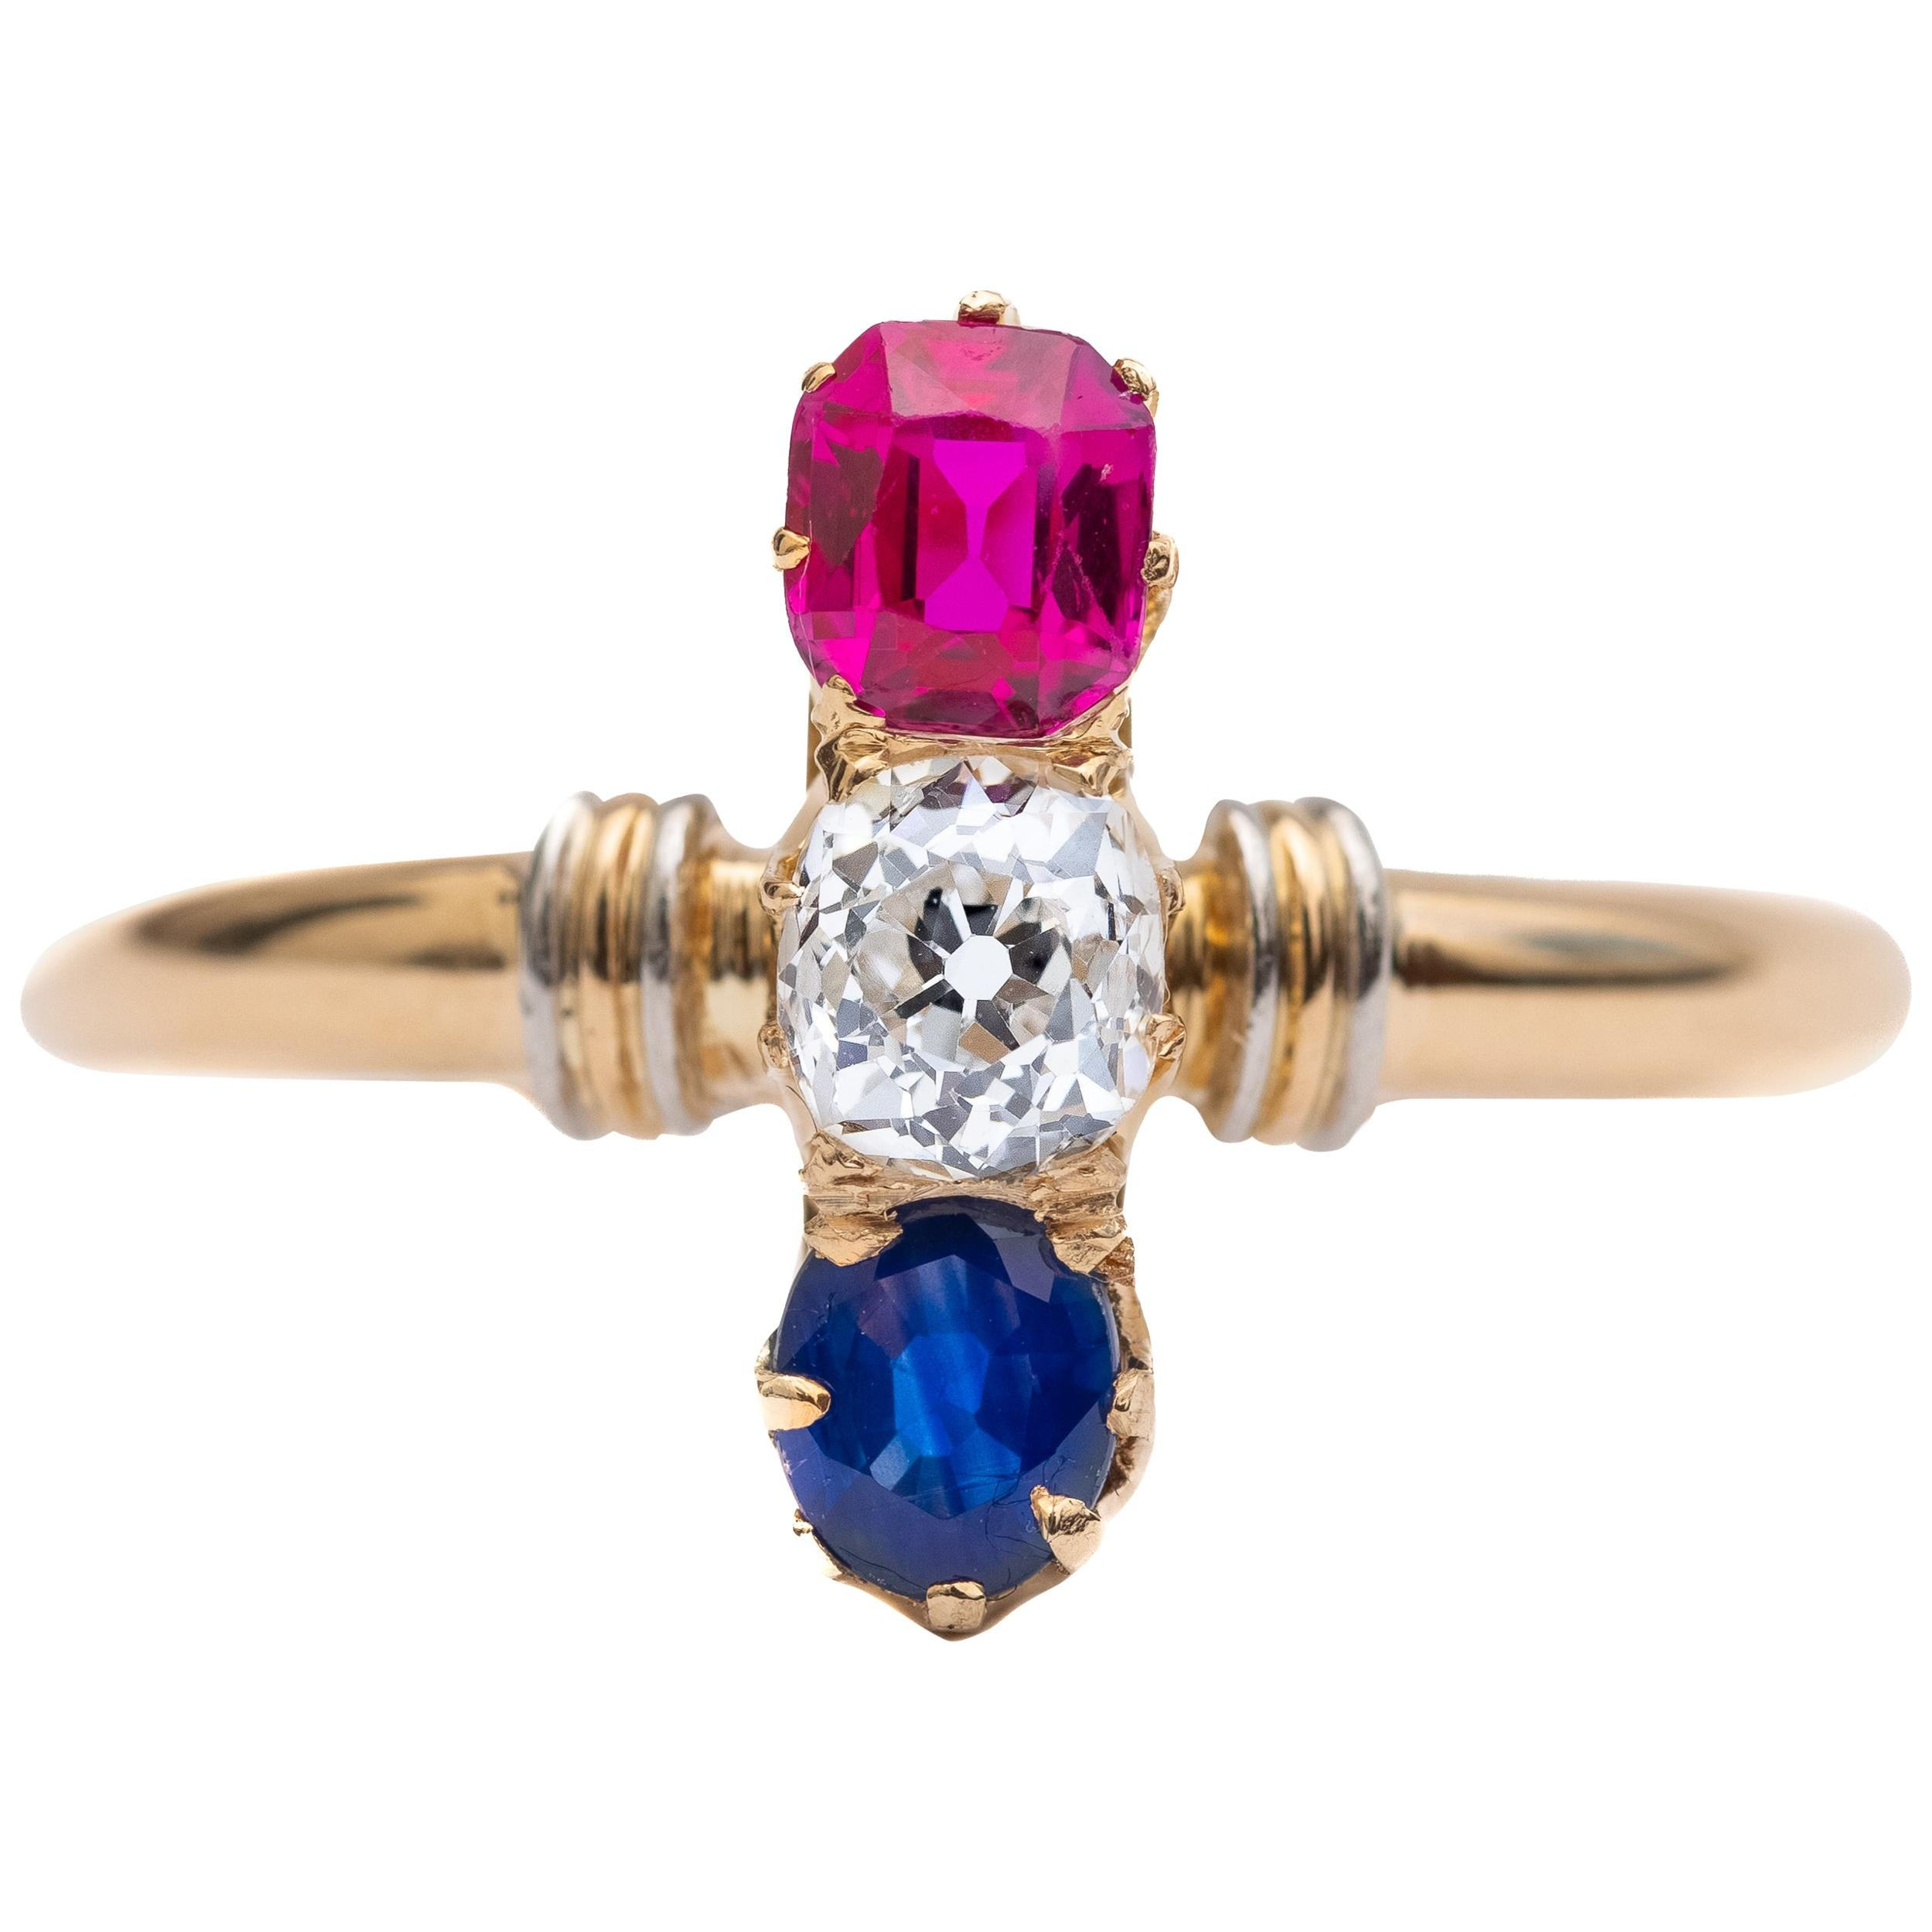 Victorian Two-Tone Diamond, Ruby and Sapphire Ring